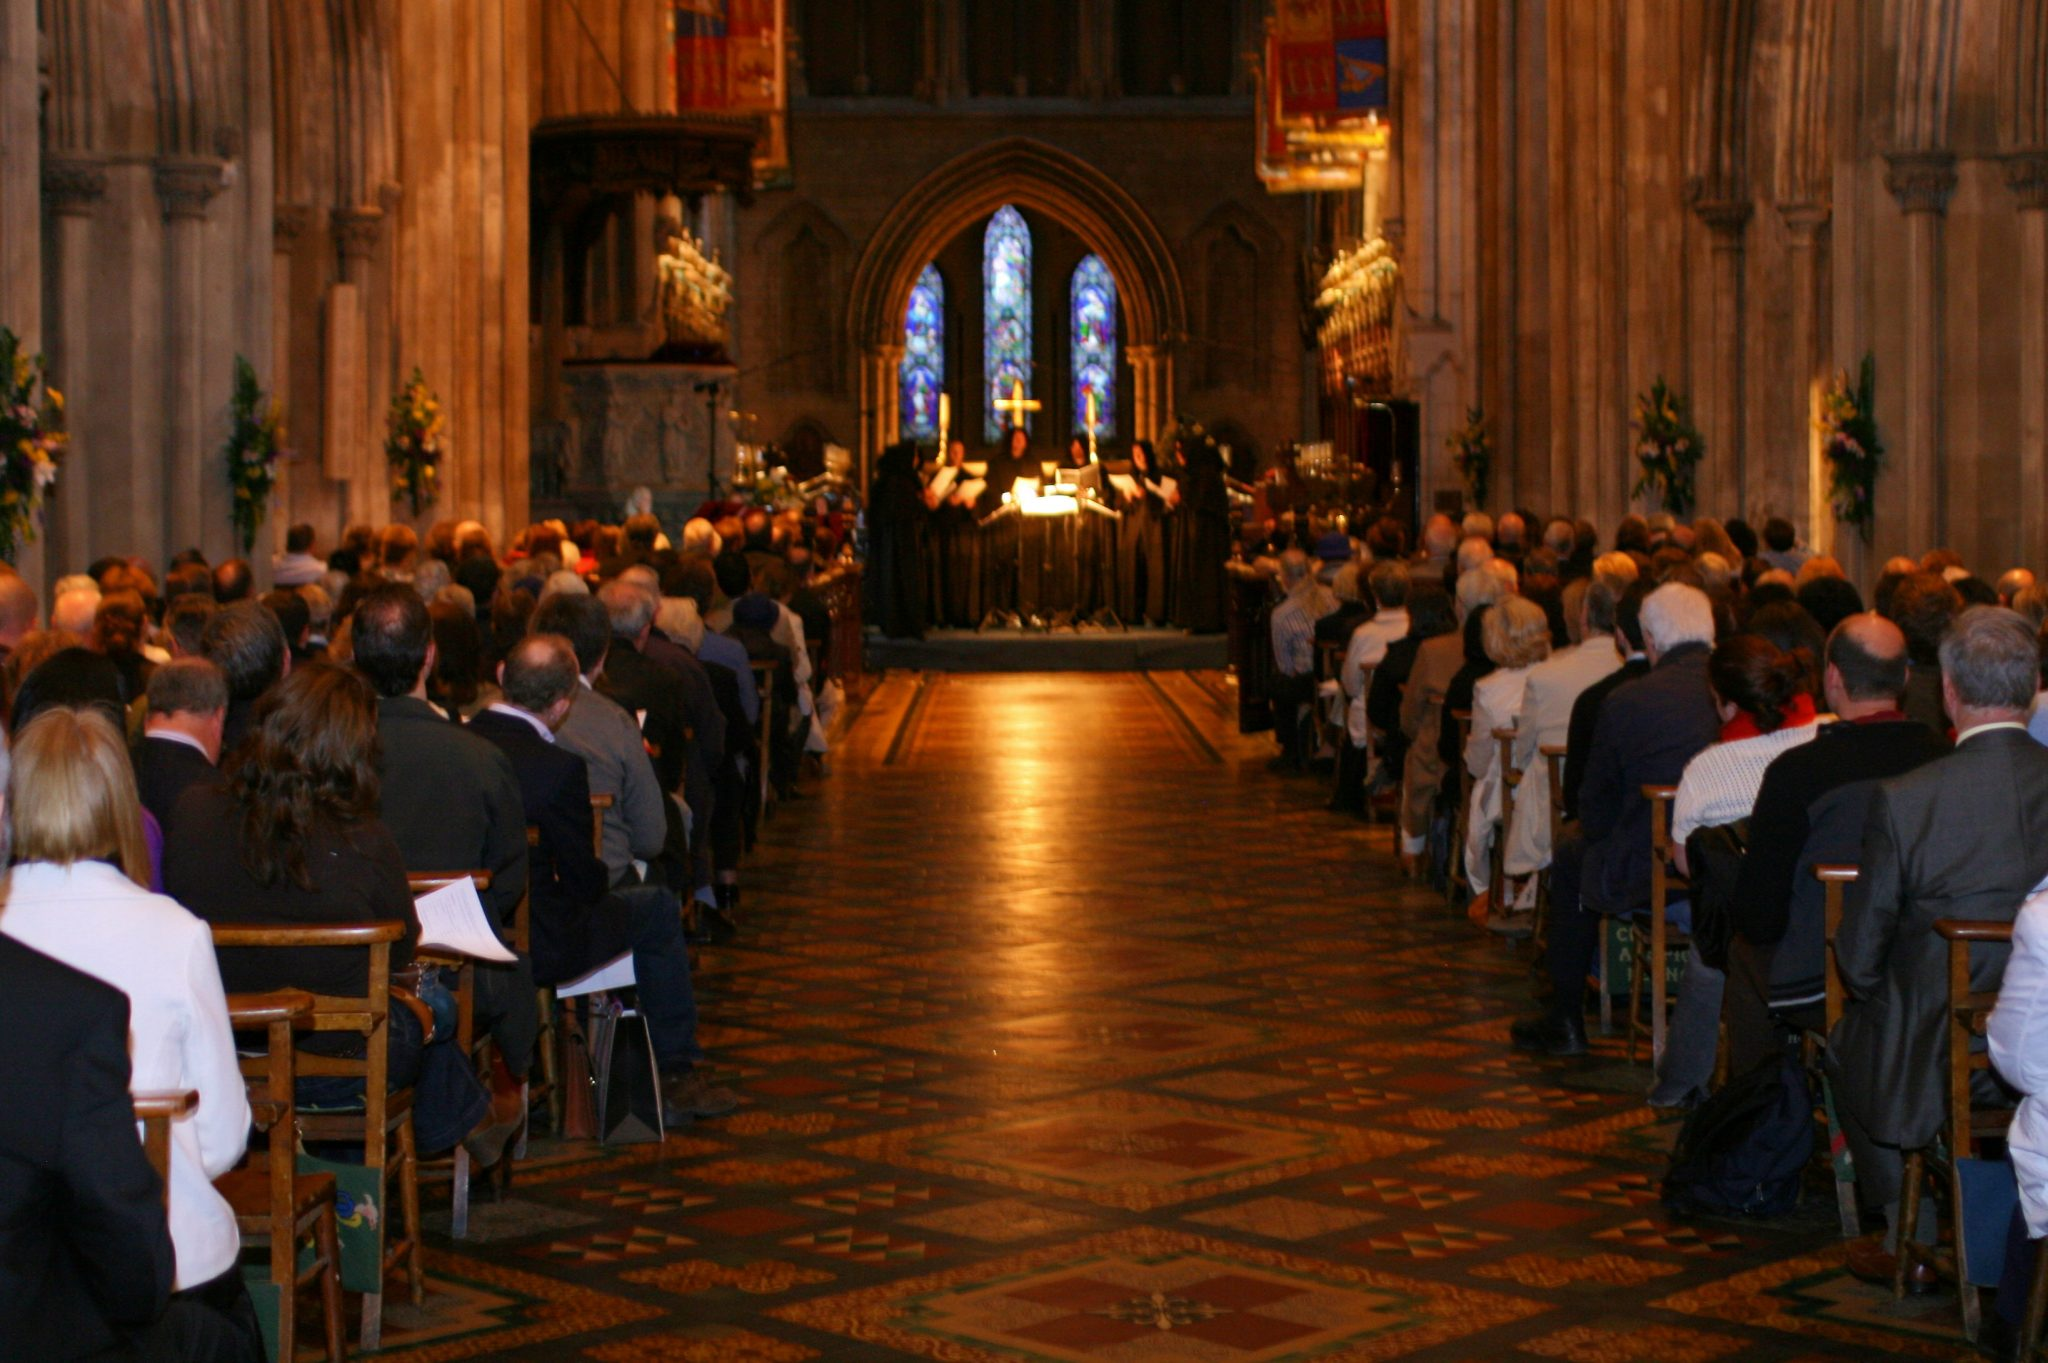 Fundraising concert for the Alzheimer's Society of Ireland, Crux Dublin St. Patrick's Cathedral